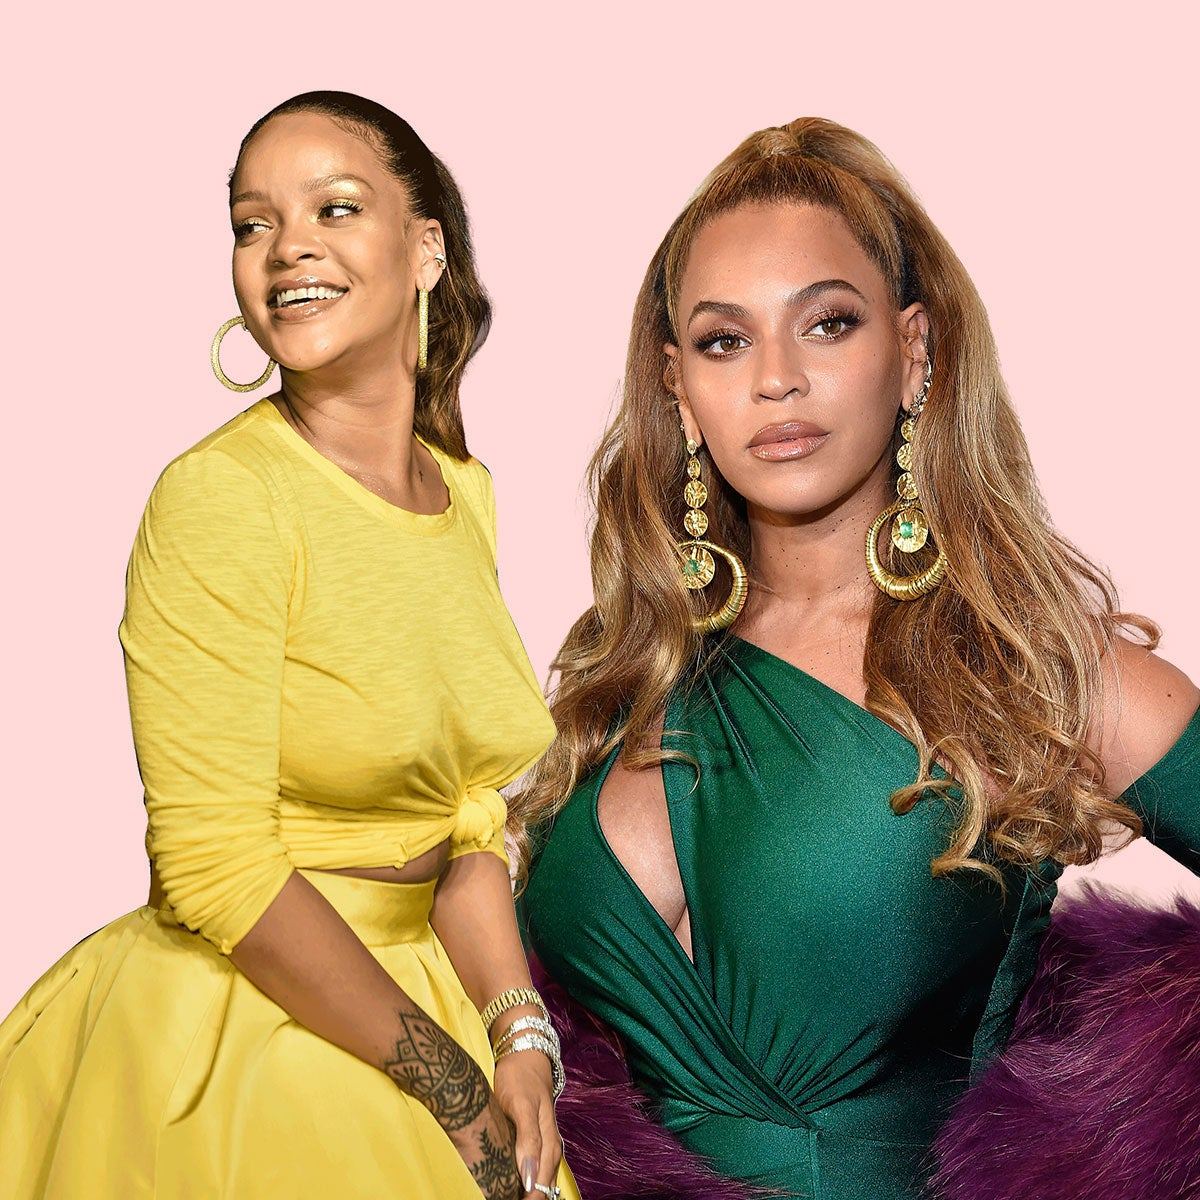 beyonce and rihanna make forbes list of highest earning women in